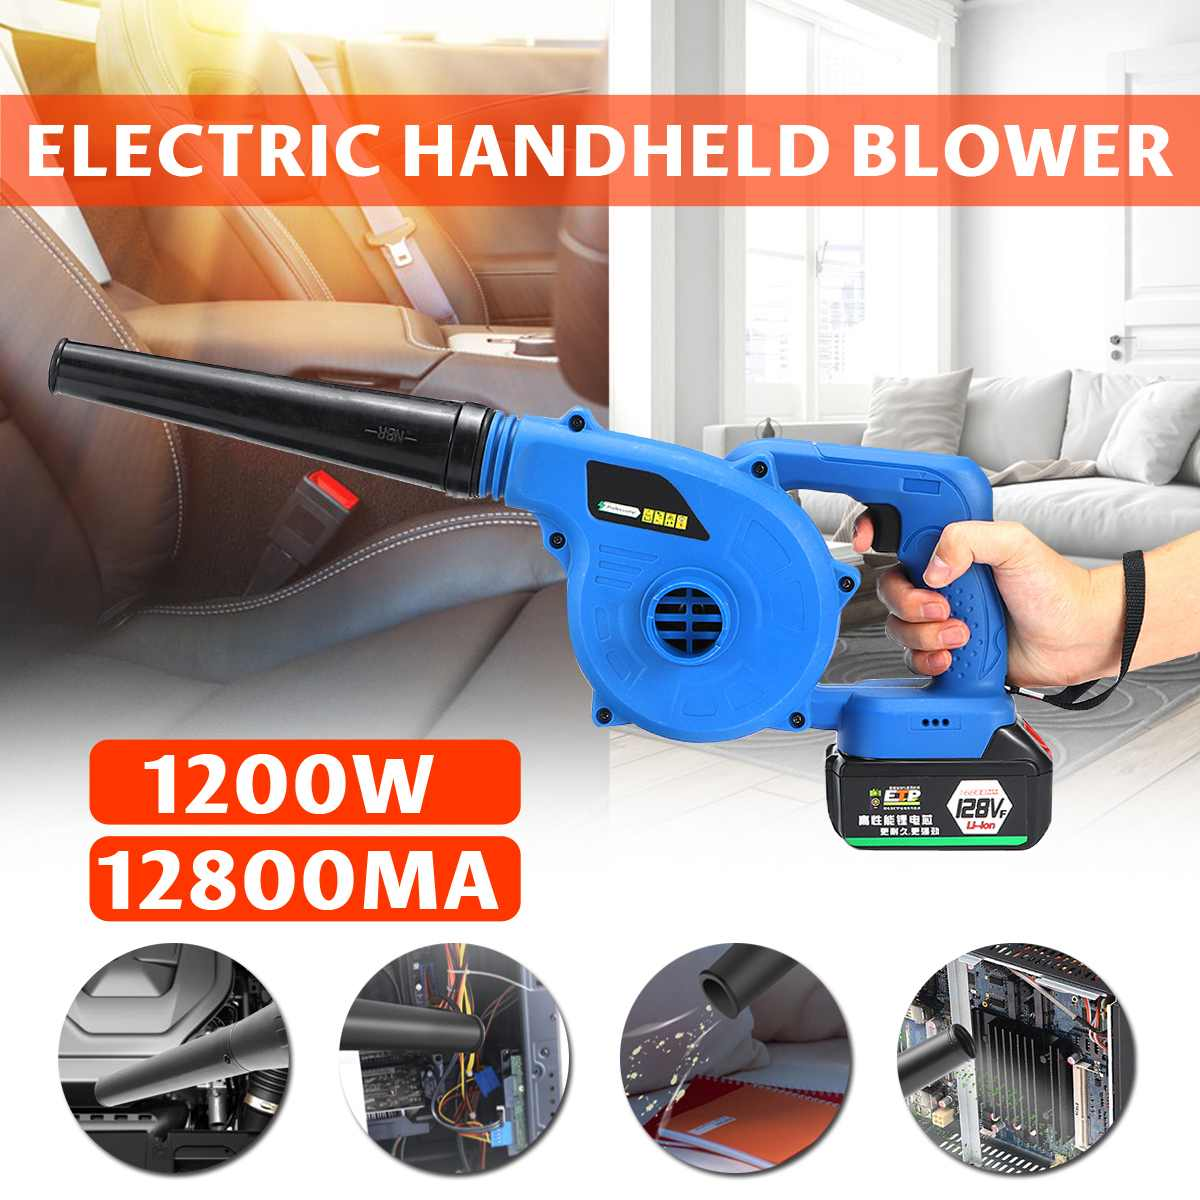 220V Cordless Electric Air Blower Handheld Blowing Lithium Battery Rechargeable Computer Dust Soot High Power Wireless Blower|Blowers| |  - title=